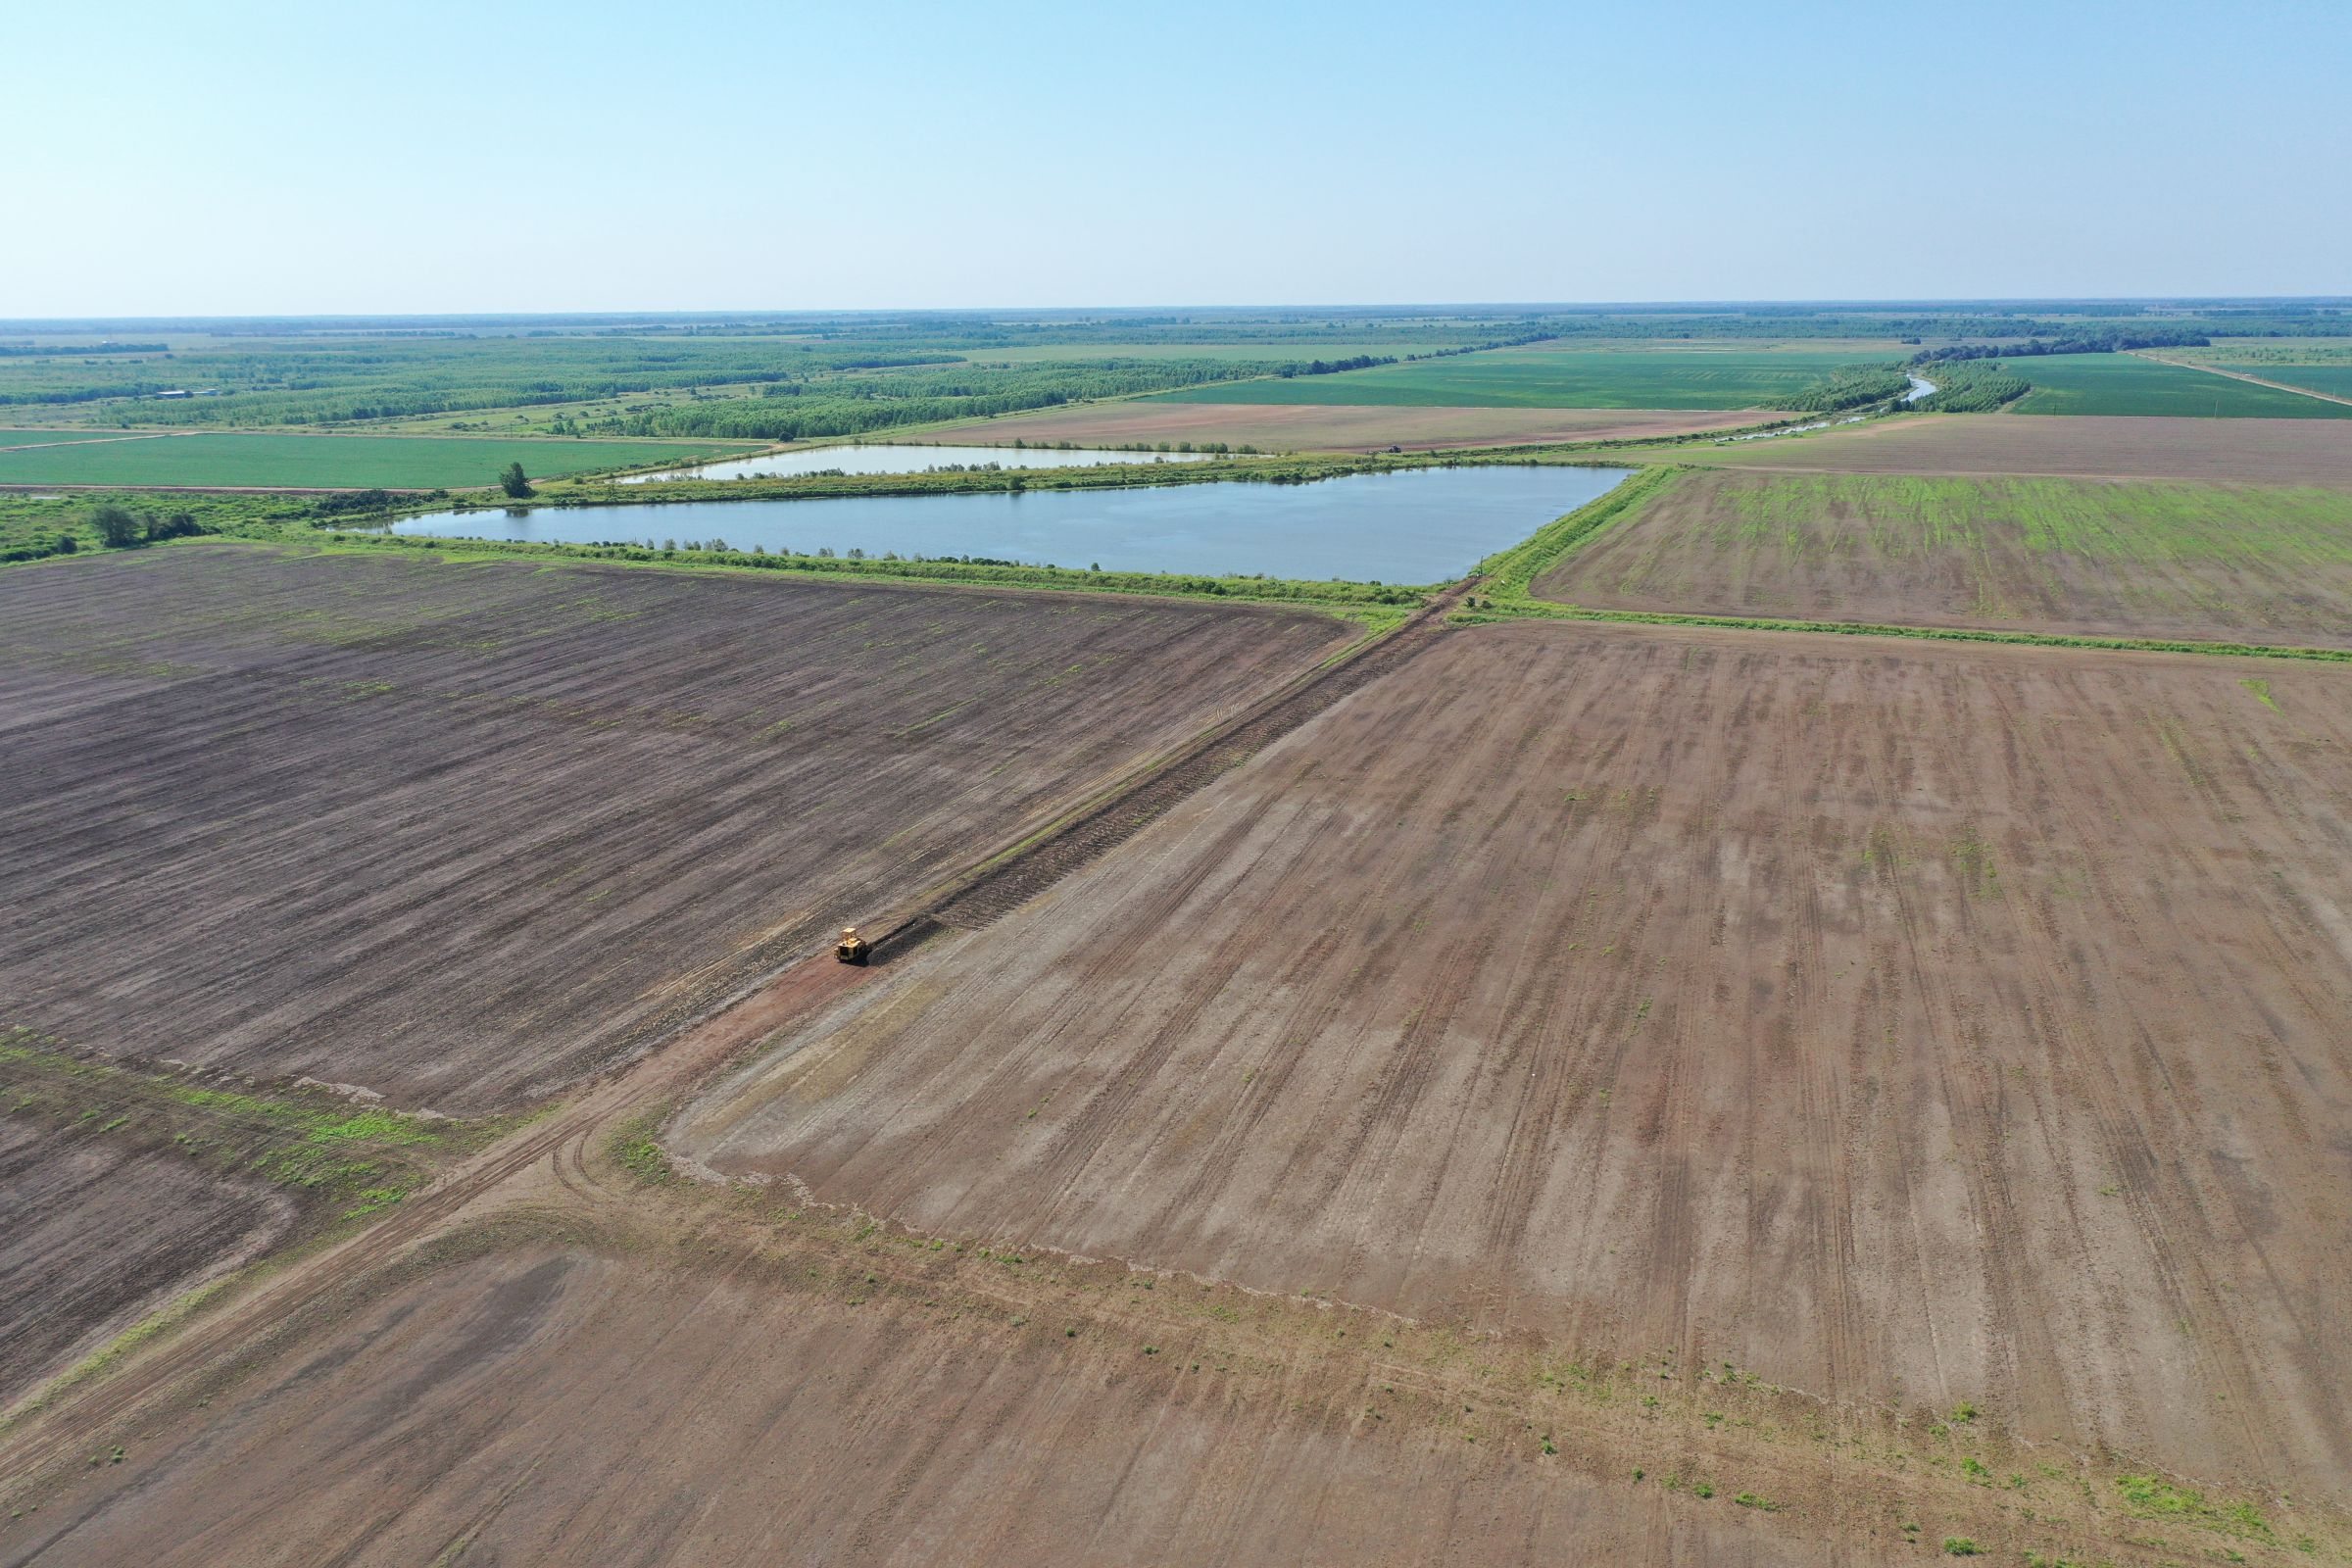 chicot-county-arkansas-1102-acres-listing-number-15259-3-2020-11-16-213034.JPG